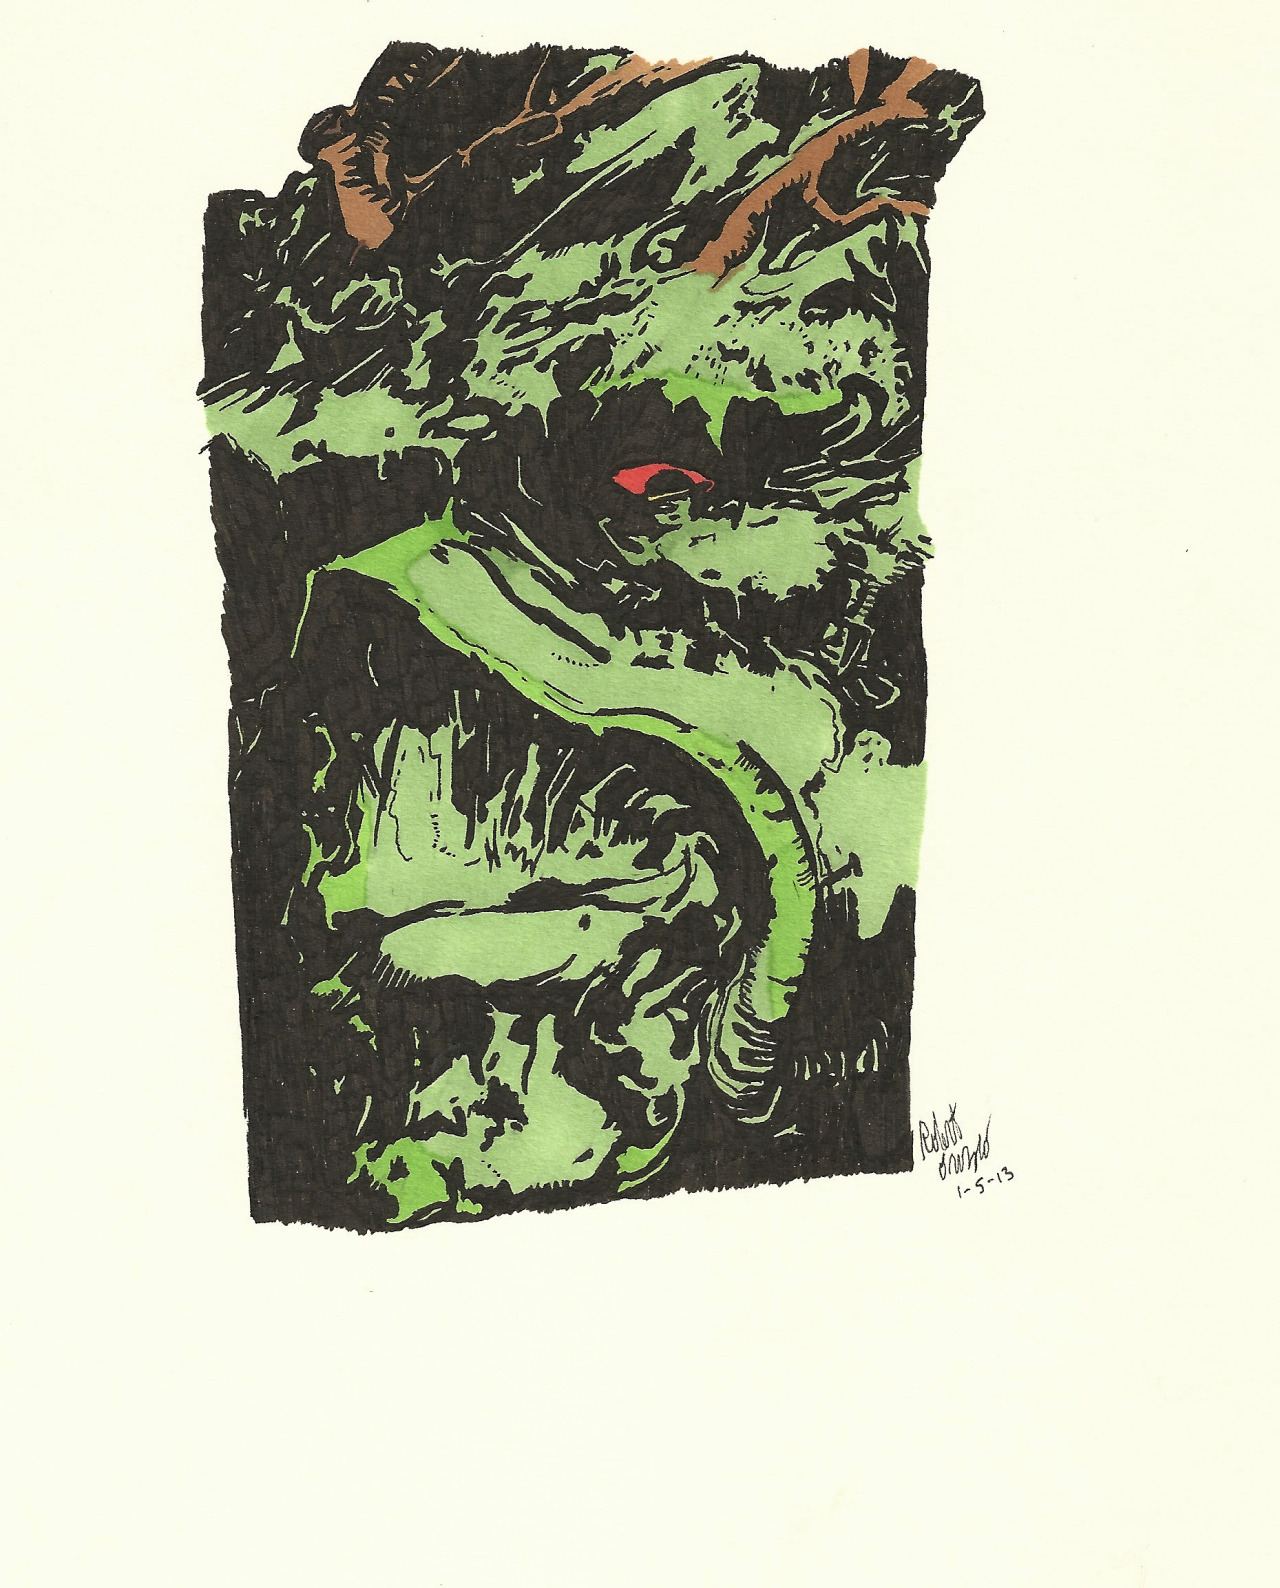 A drawing of Swamp Thang.